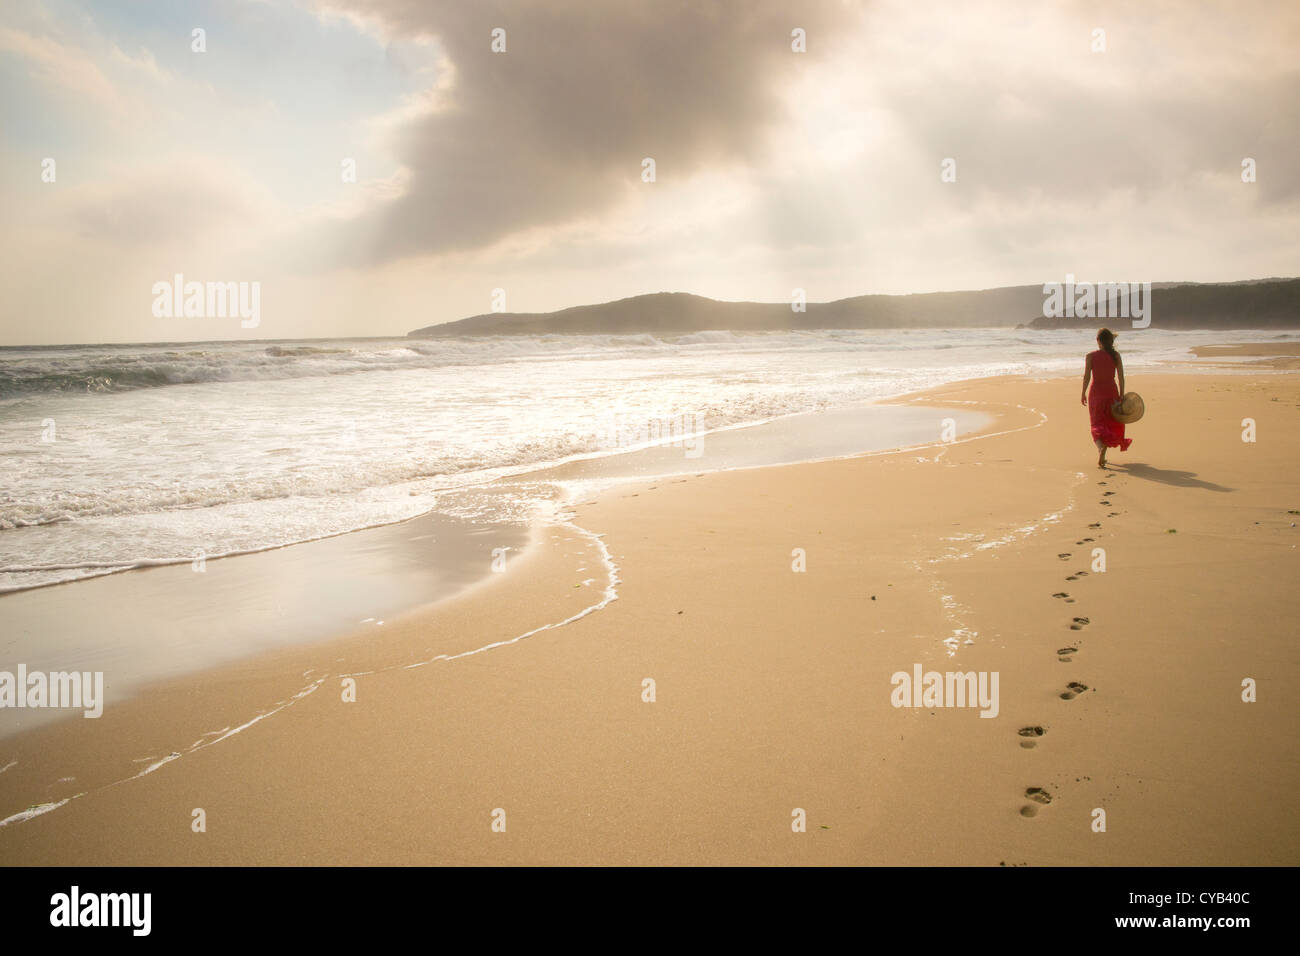 Young woman walk on an empty wild beach towards celestial beams of light falling from the sky - Stock Image